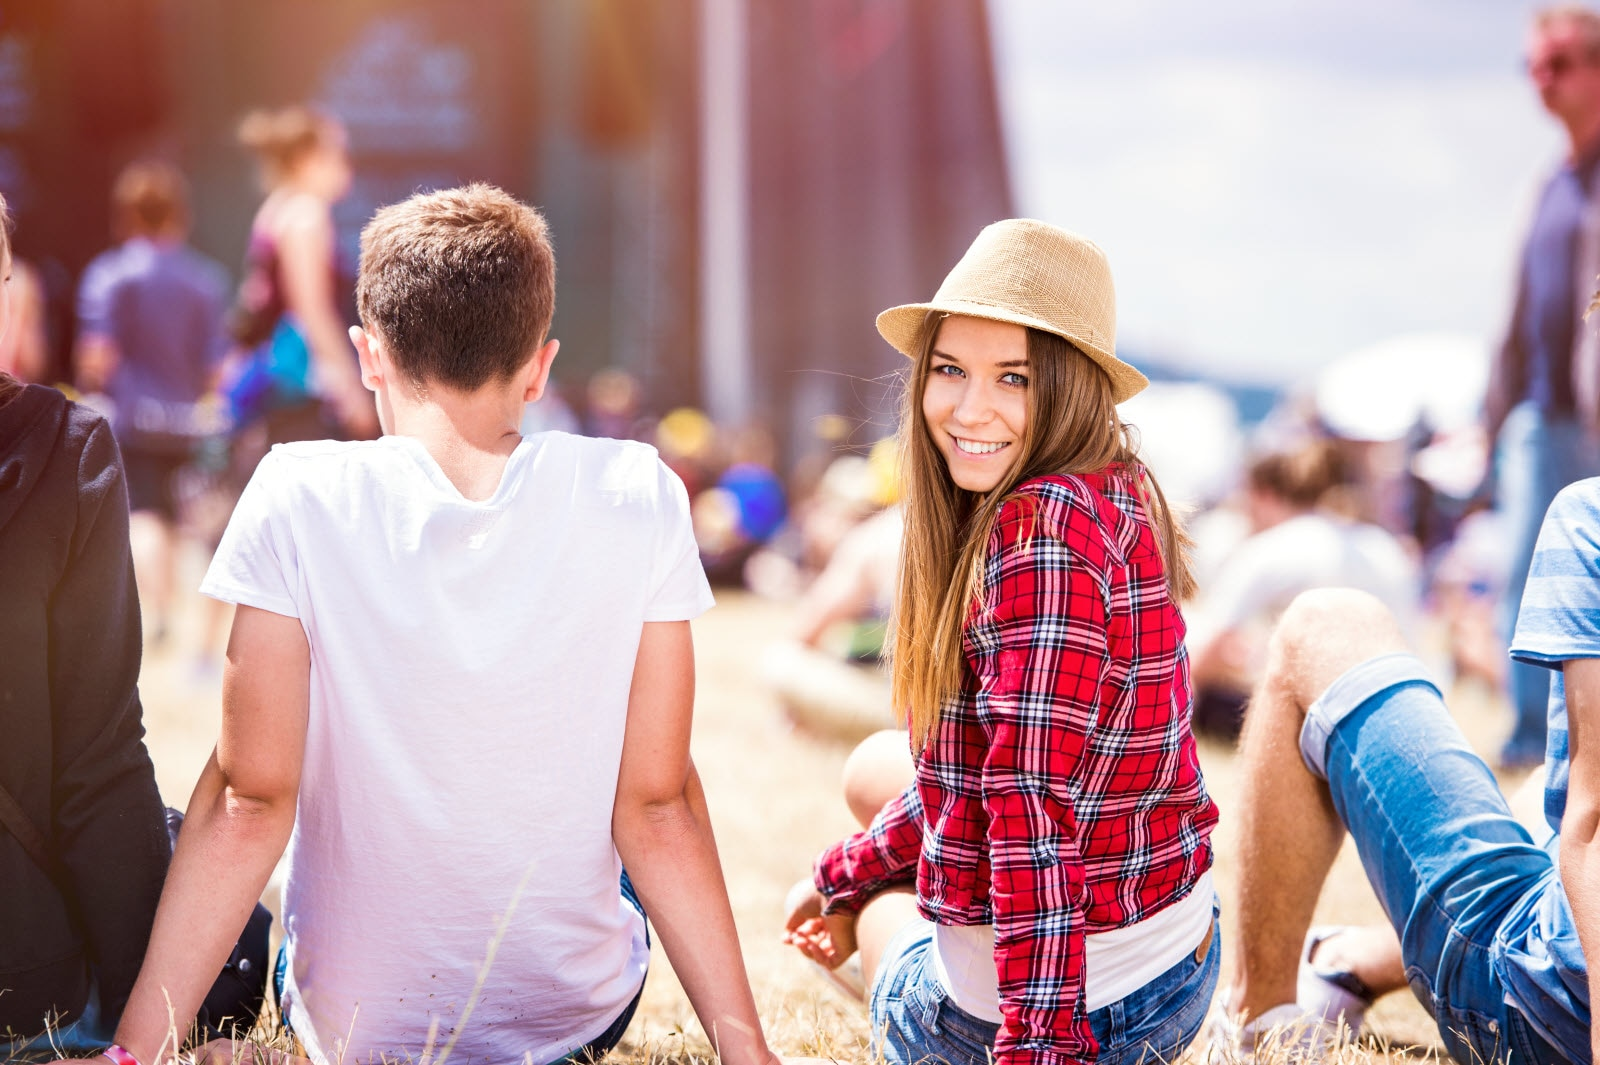 Teenage couple at summer music festival, sitting in front of stage